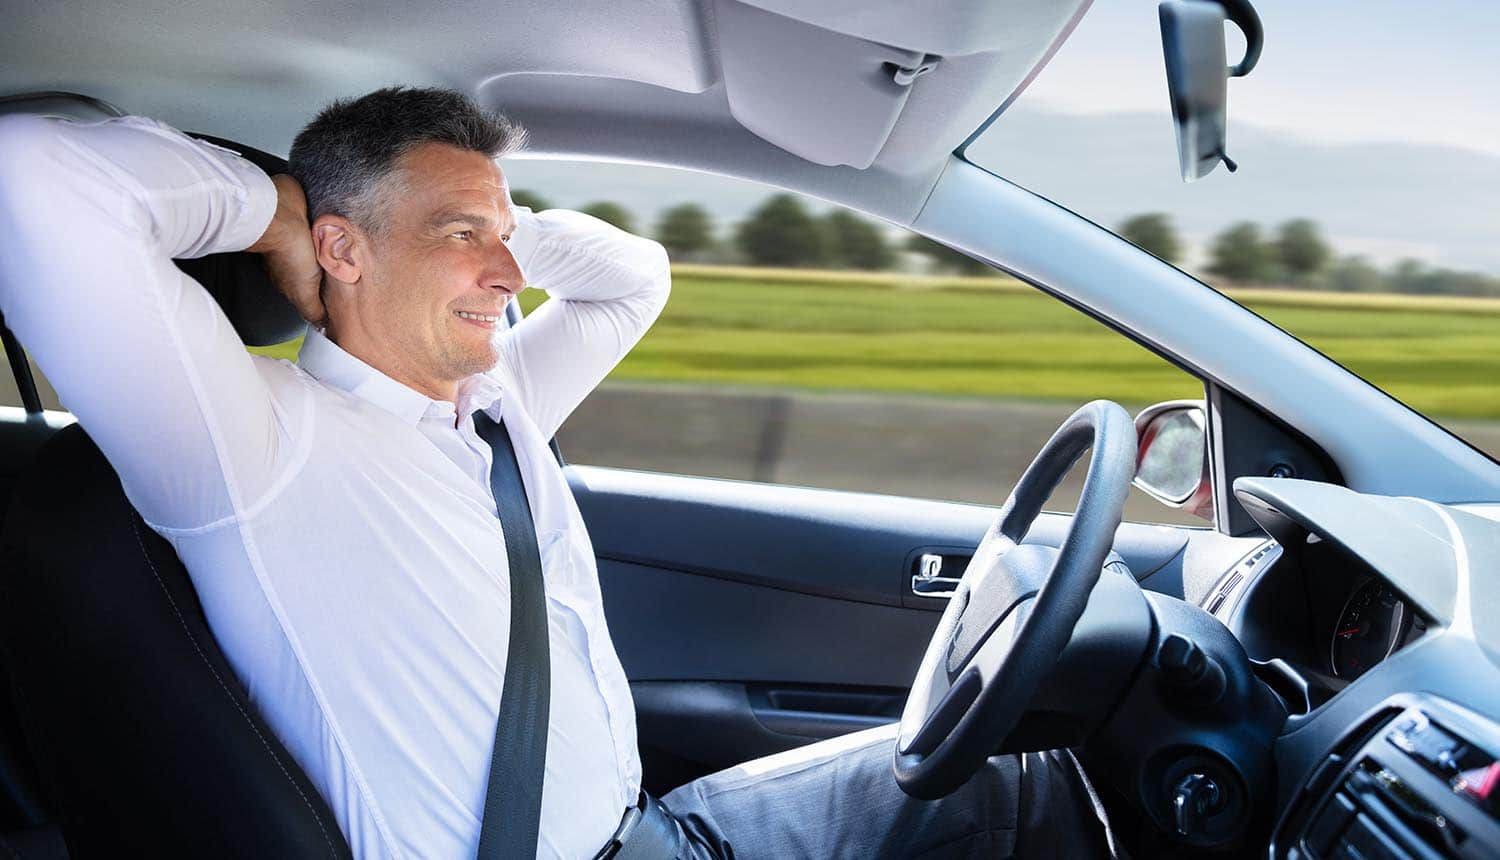 Relaxed man sitting in an autonomous car showing increasing importance of security